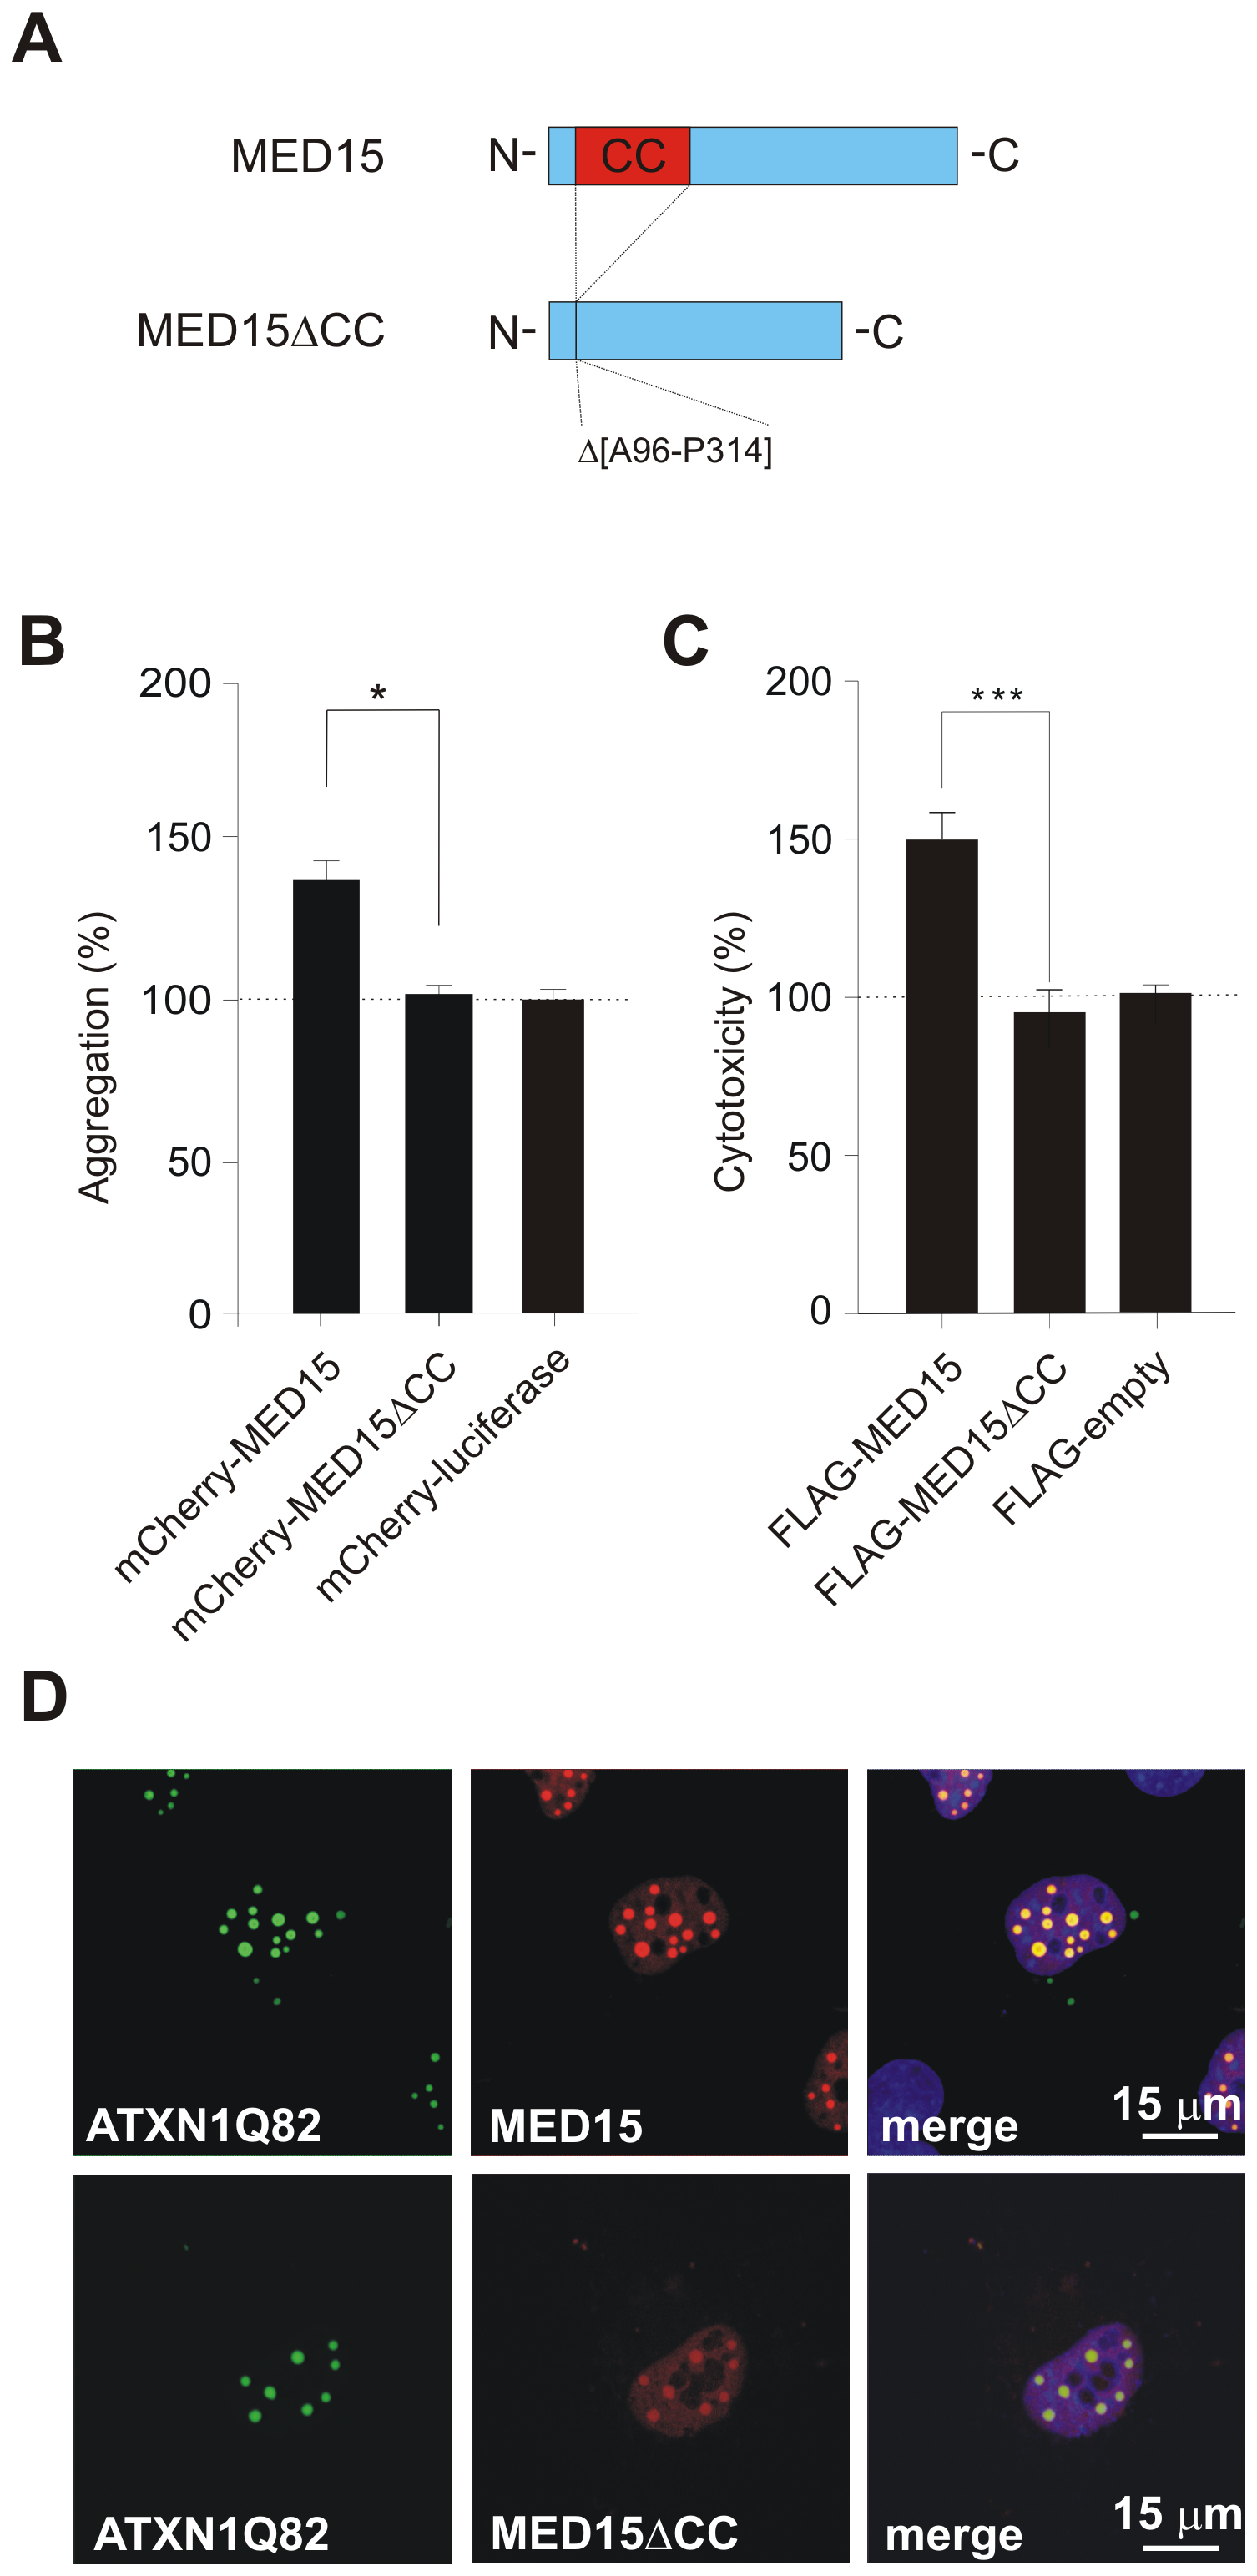 Effects of MED15ΔCC on mutant ATXN1 aggregation and cytotoxicity in cell-based assays.